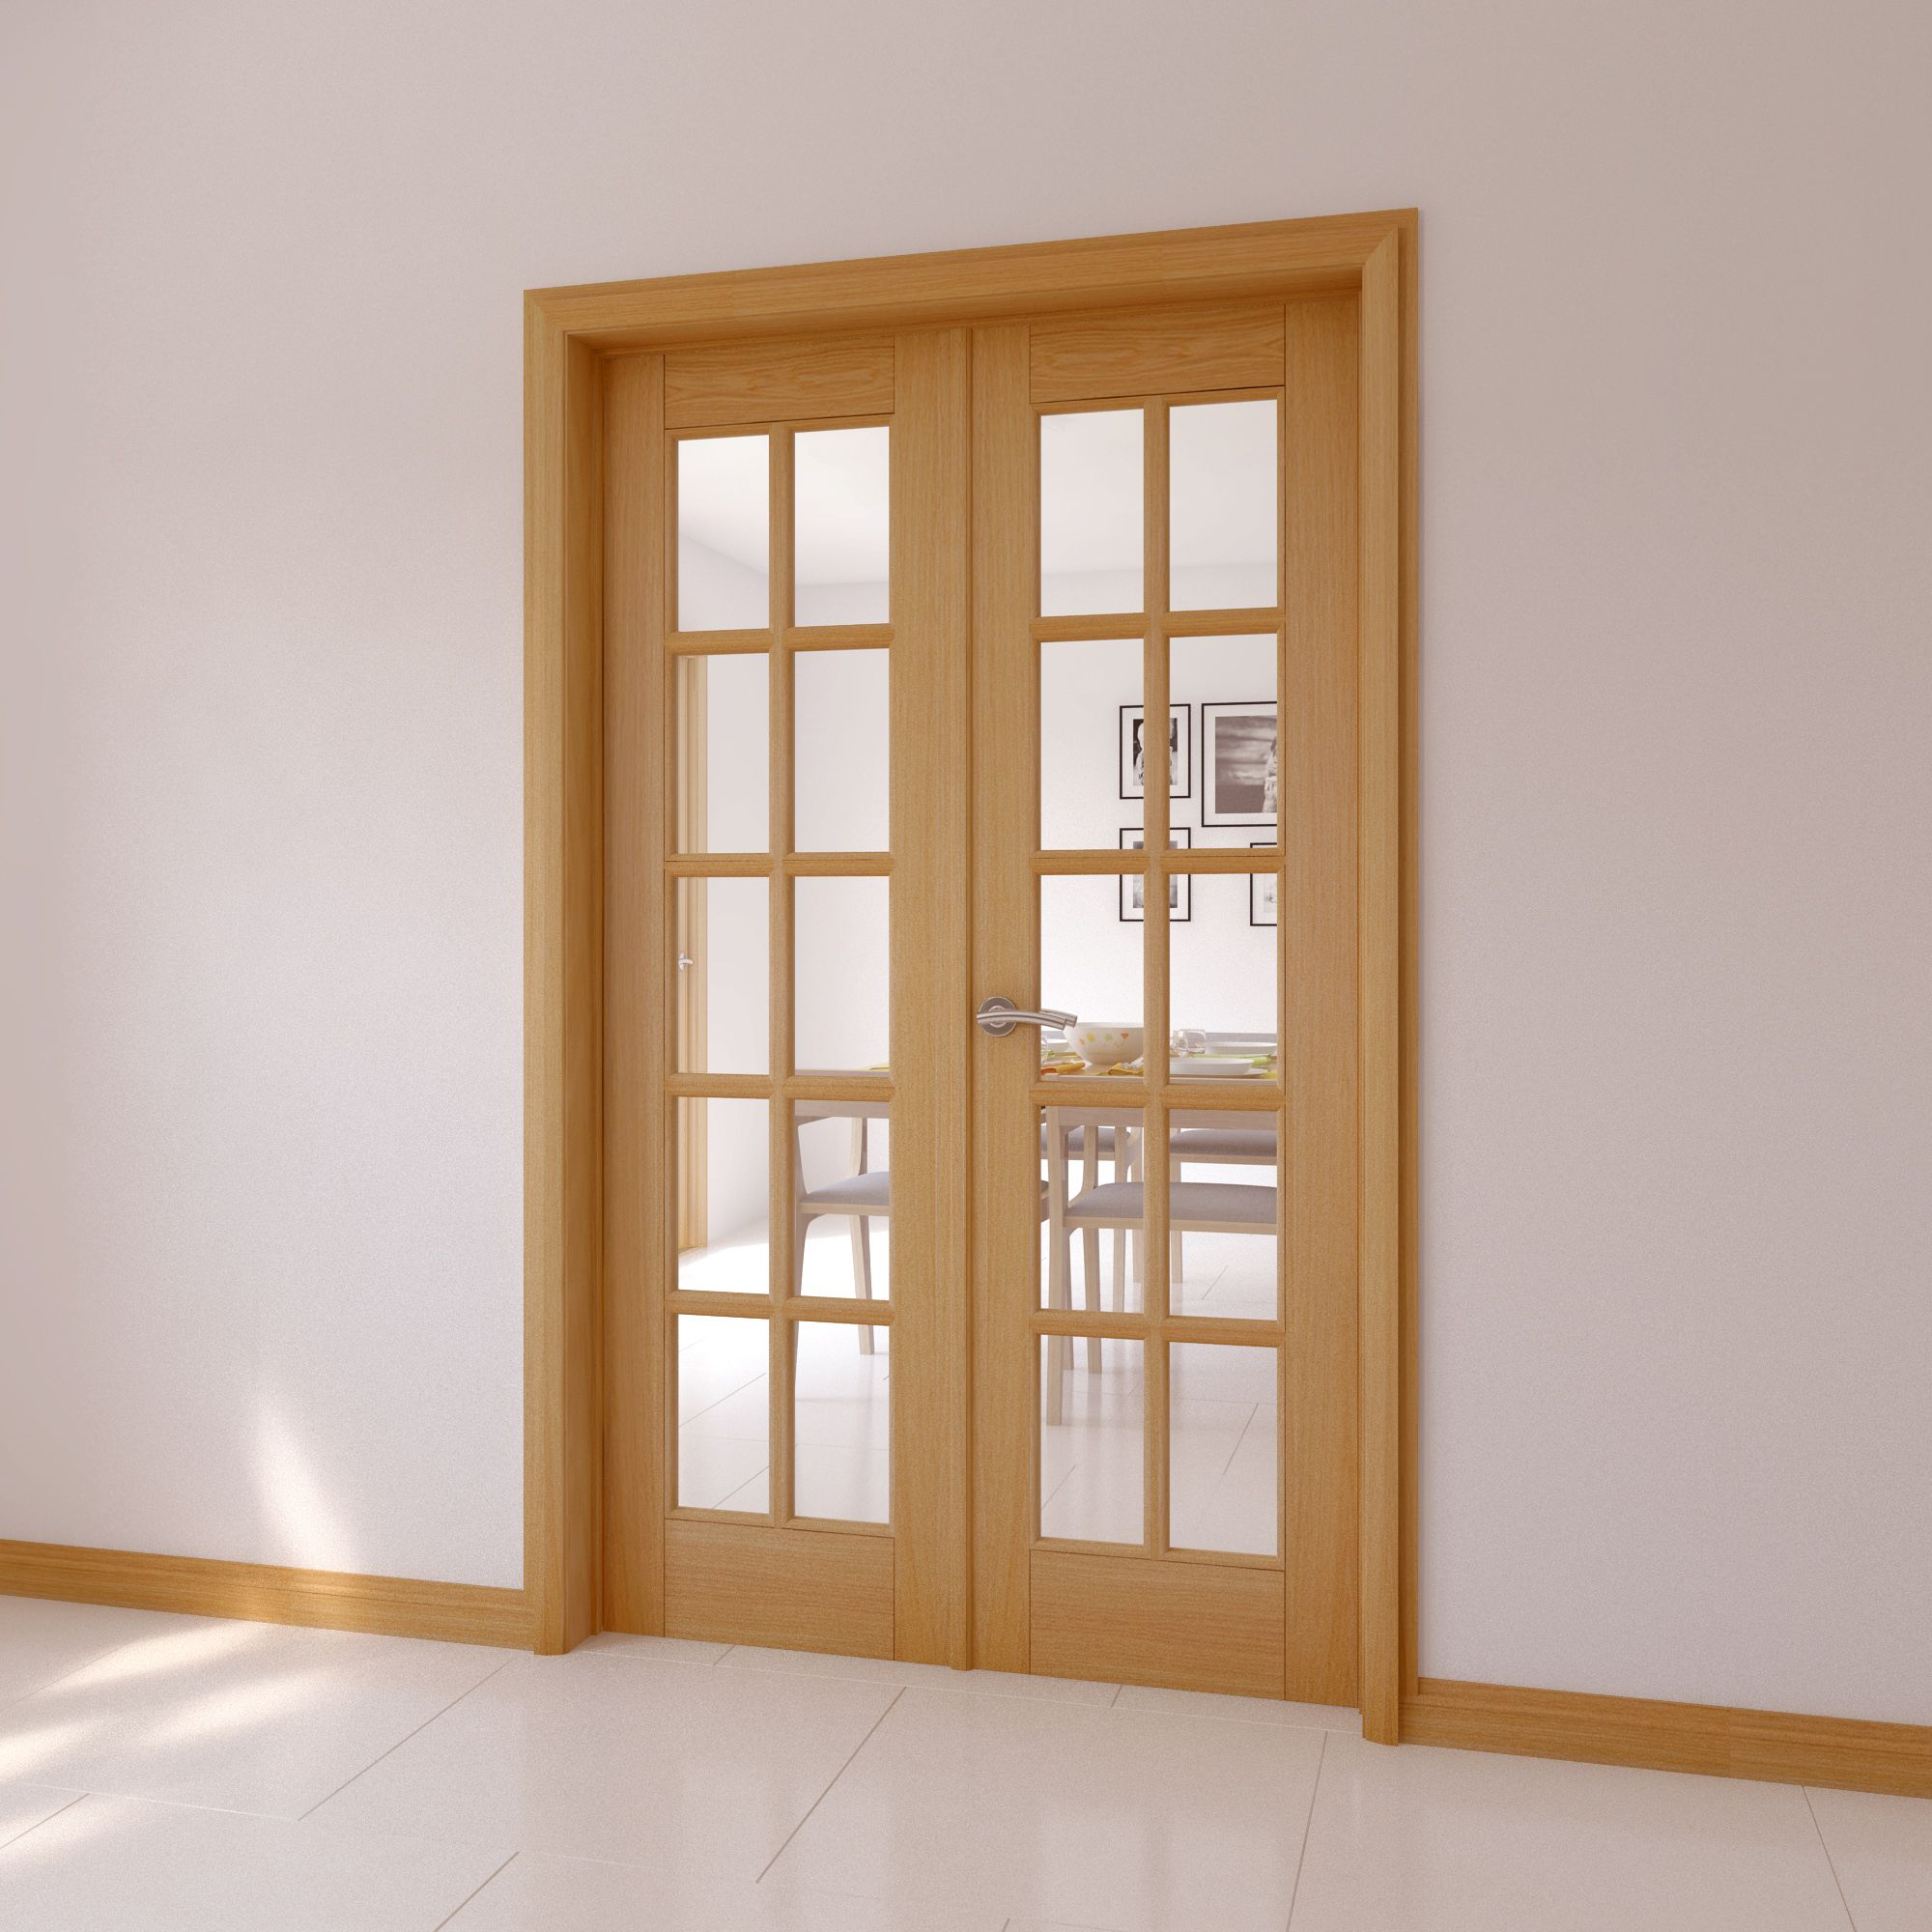 10 Lite Clear Glazed Internal French Door Set, (H)2030mm (W)770mm |  Departments | DIY at B&Q